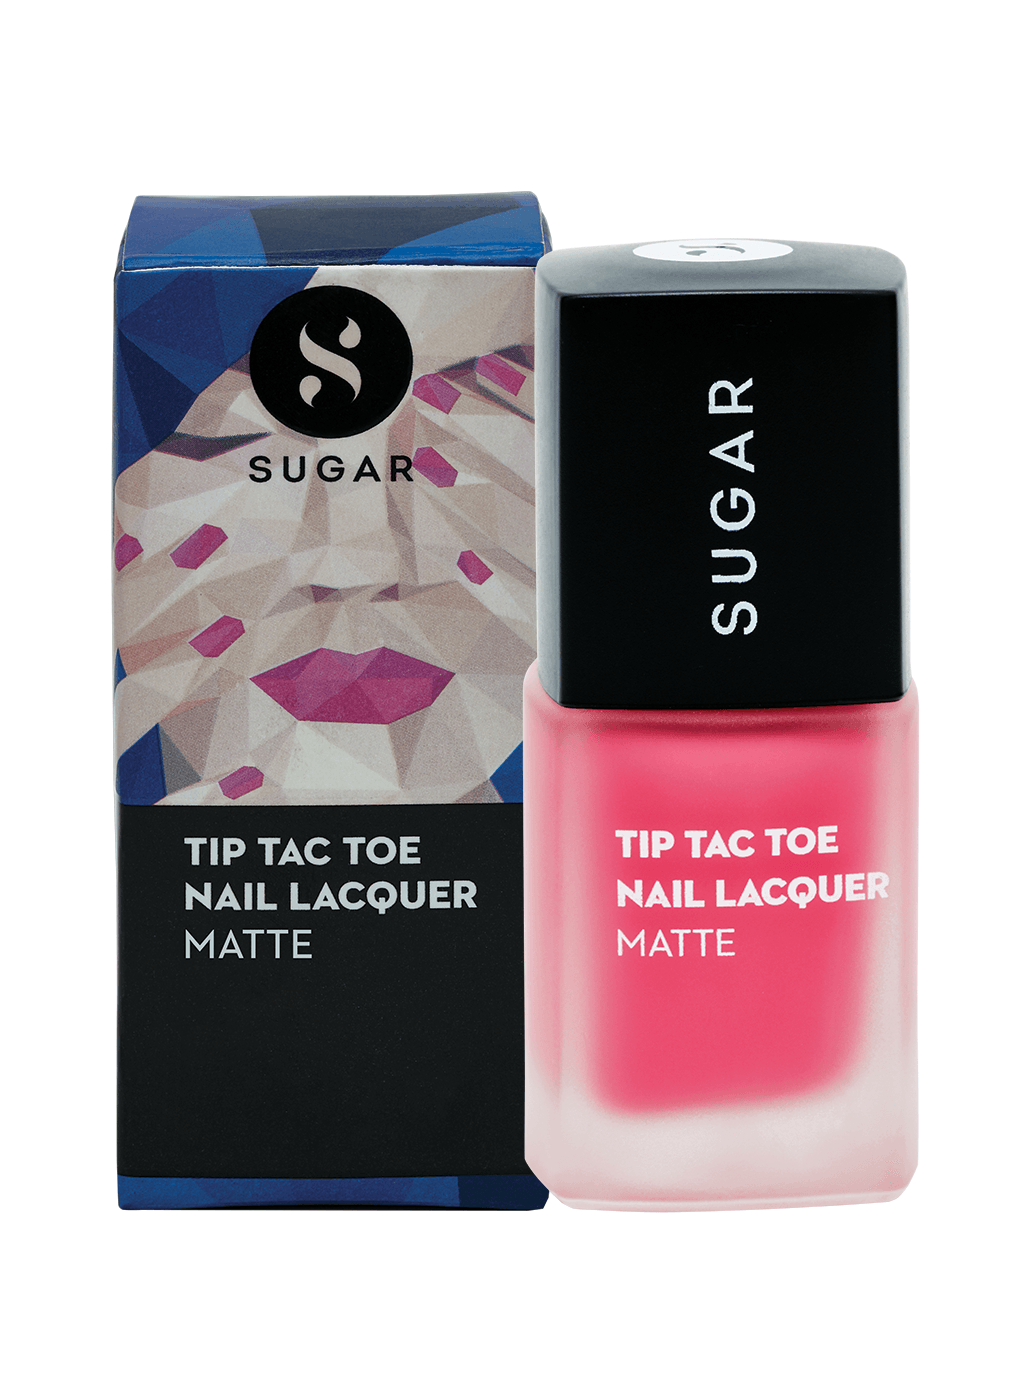 Tip Tac Toe Nail Lacquer - 027 Pinky Promise (Matte Hot Pink)